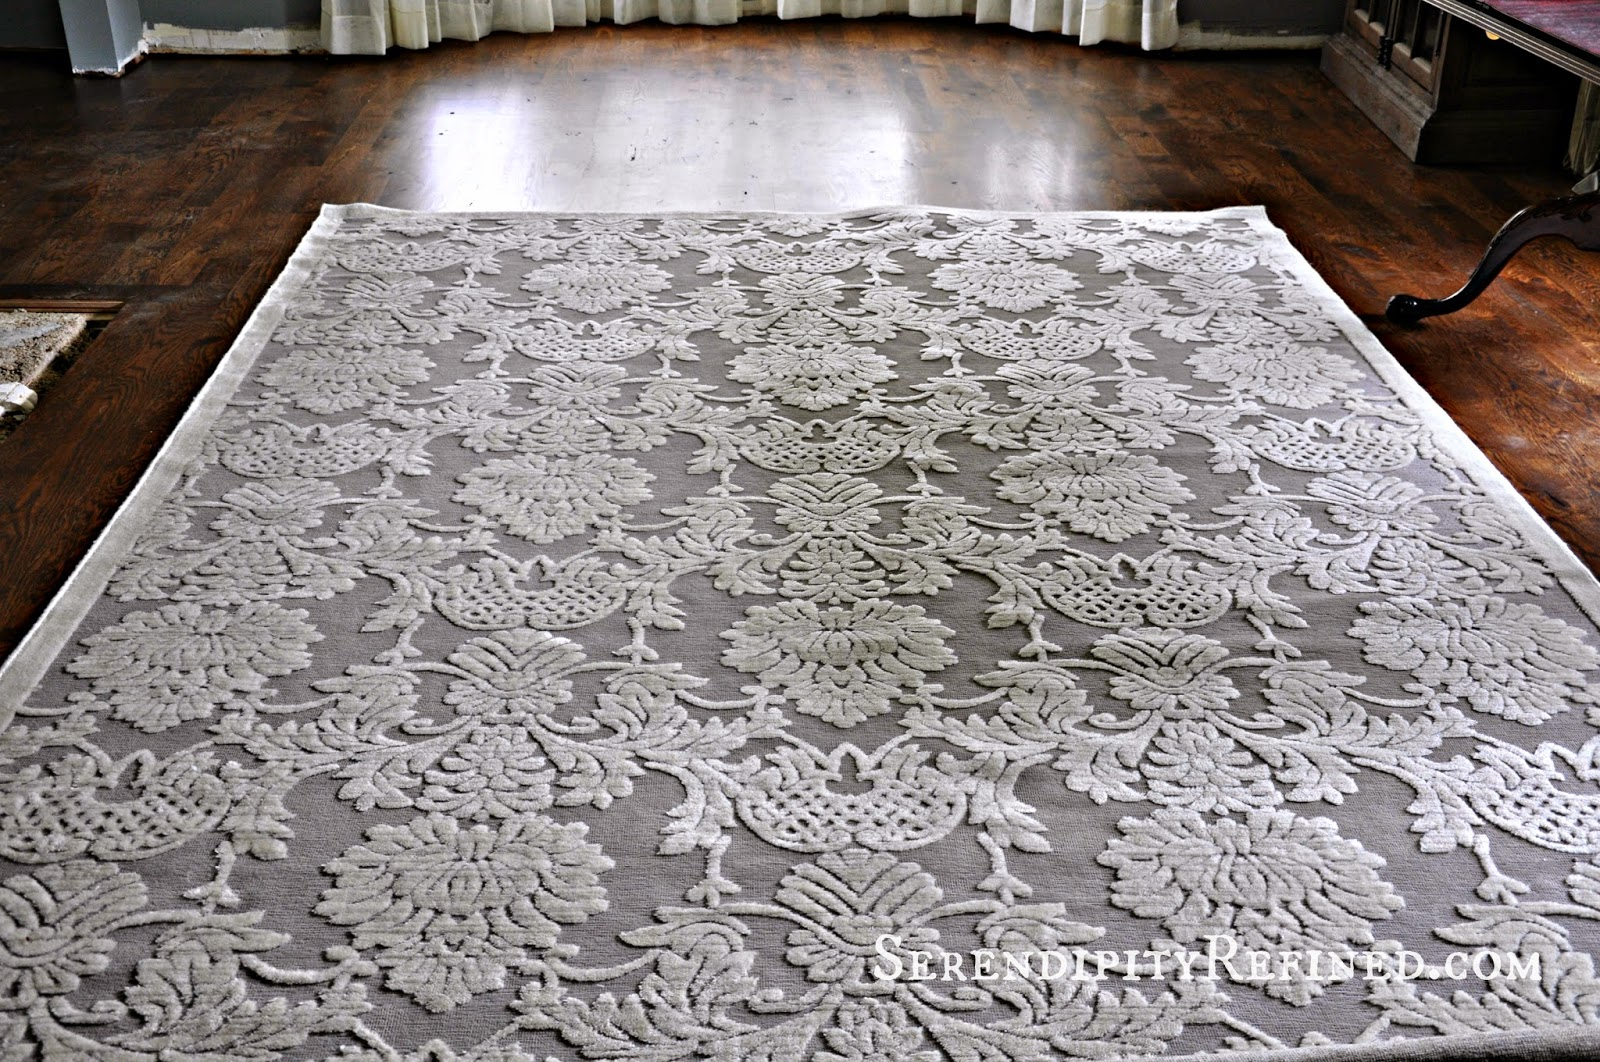 Serendipity refined blog gray and ivory dining room area rug for Dining room rugs